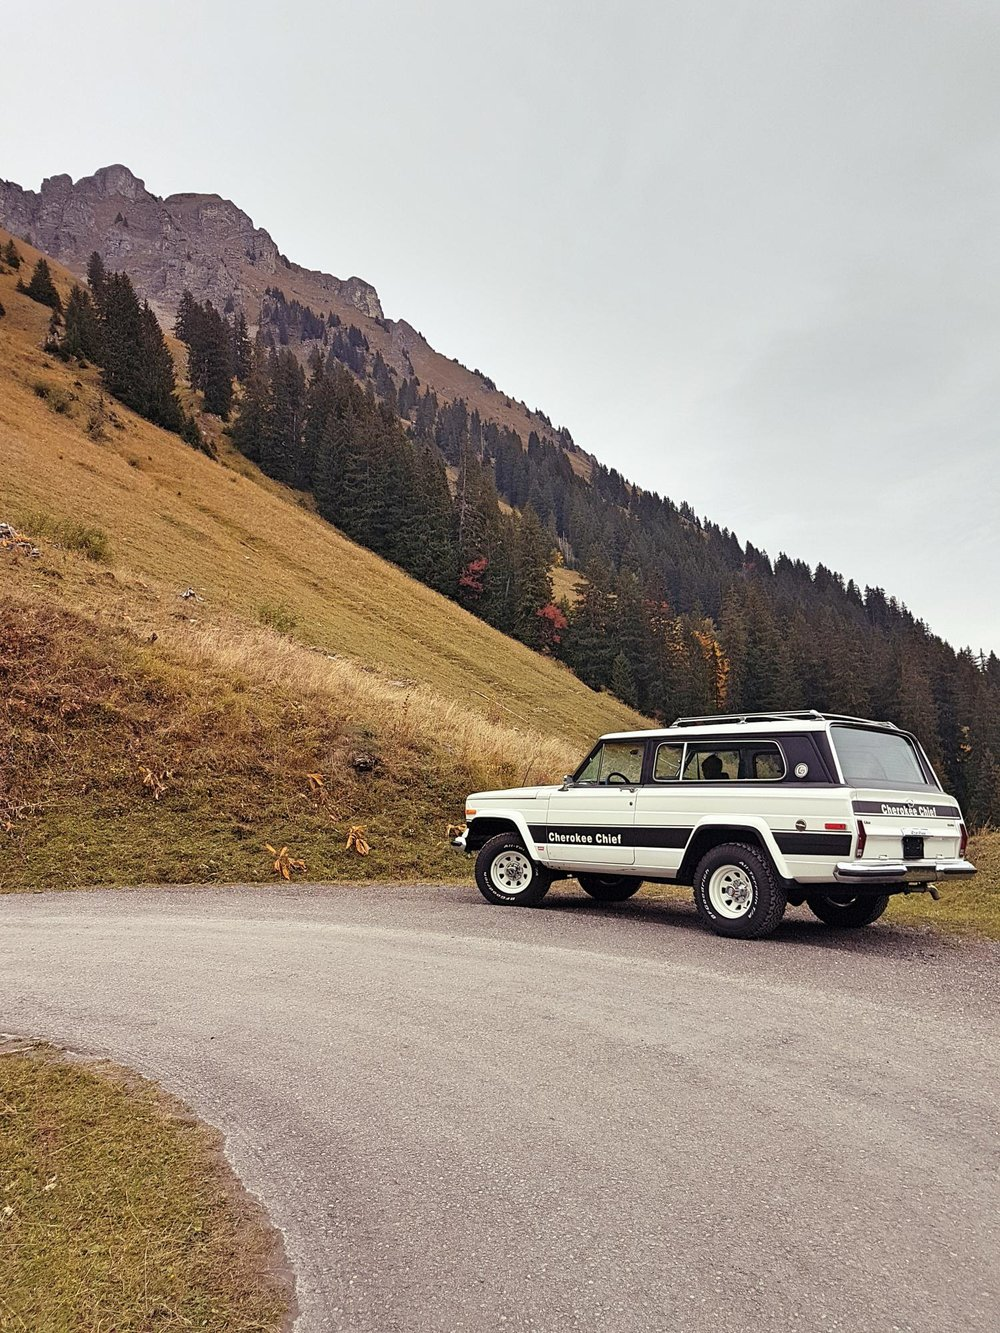 jeep-cherokee-chief-1978-shooting-morgins-switzerland-34.jpg